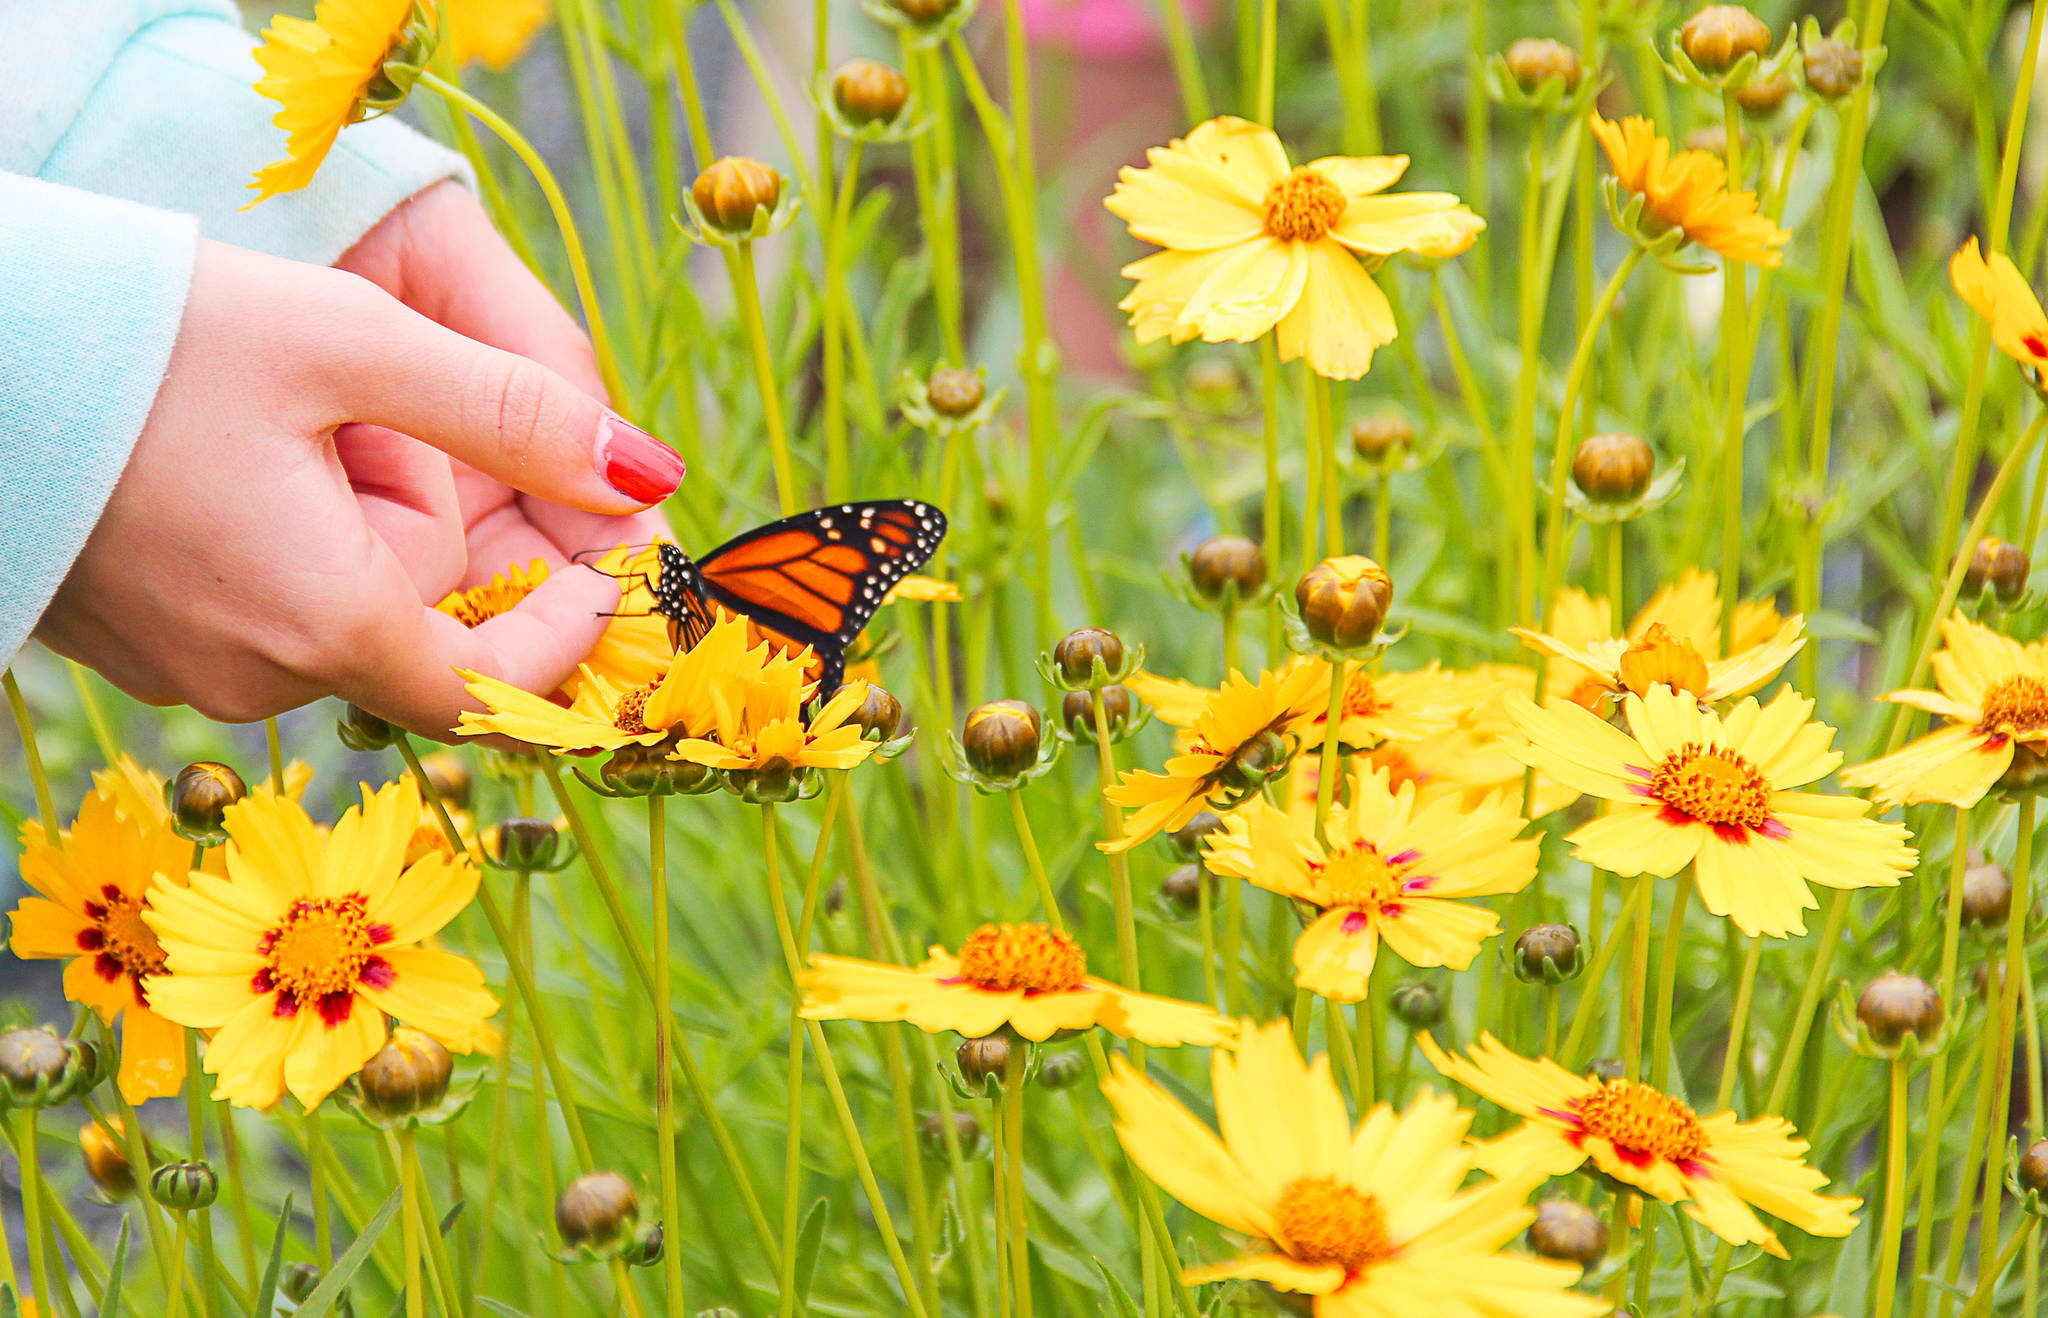 With the gardens at Krause Berry Farms always expanding, the butterflies are tending to stick around longer than ever after the annual fundraising release. (Special to the Langley Advance)